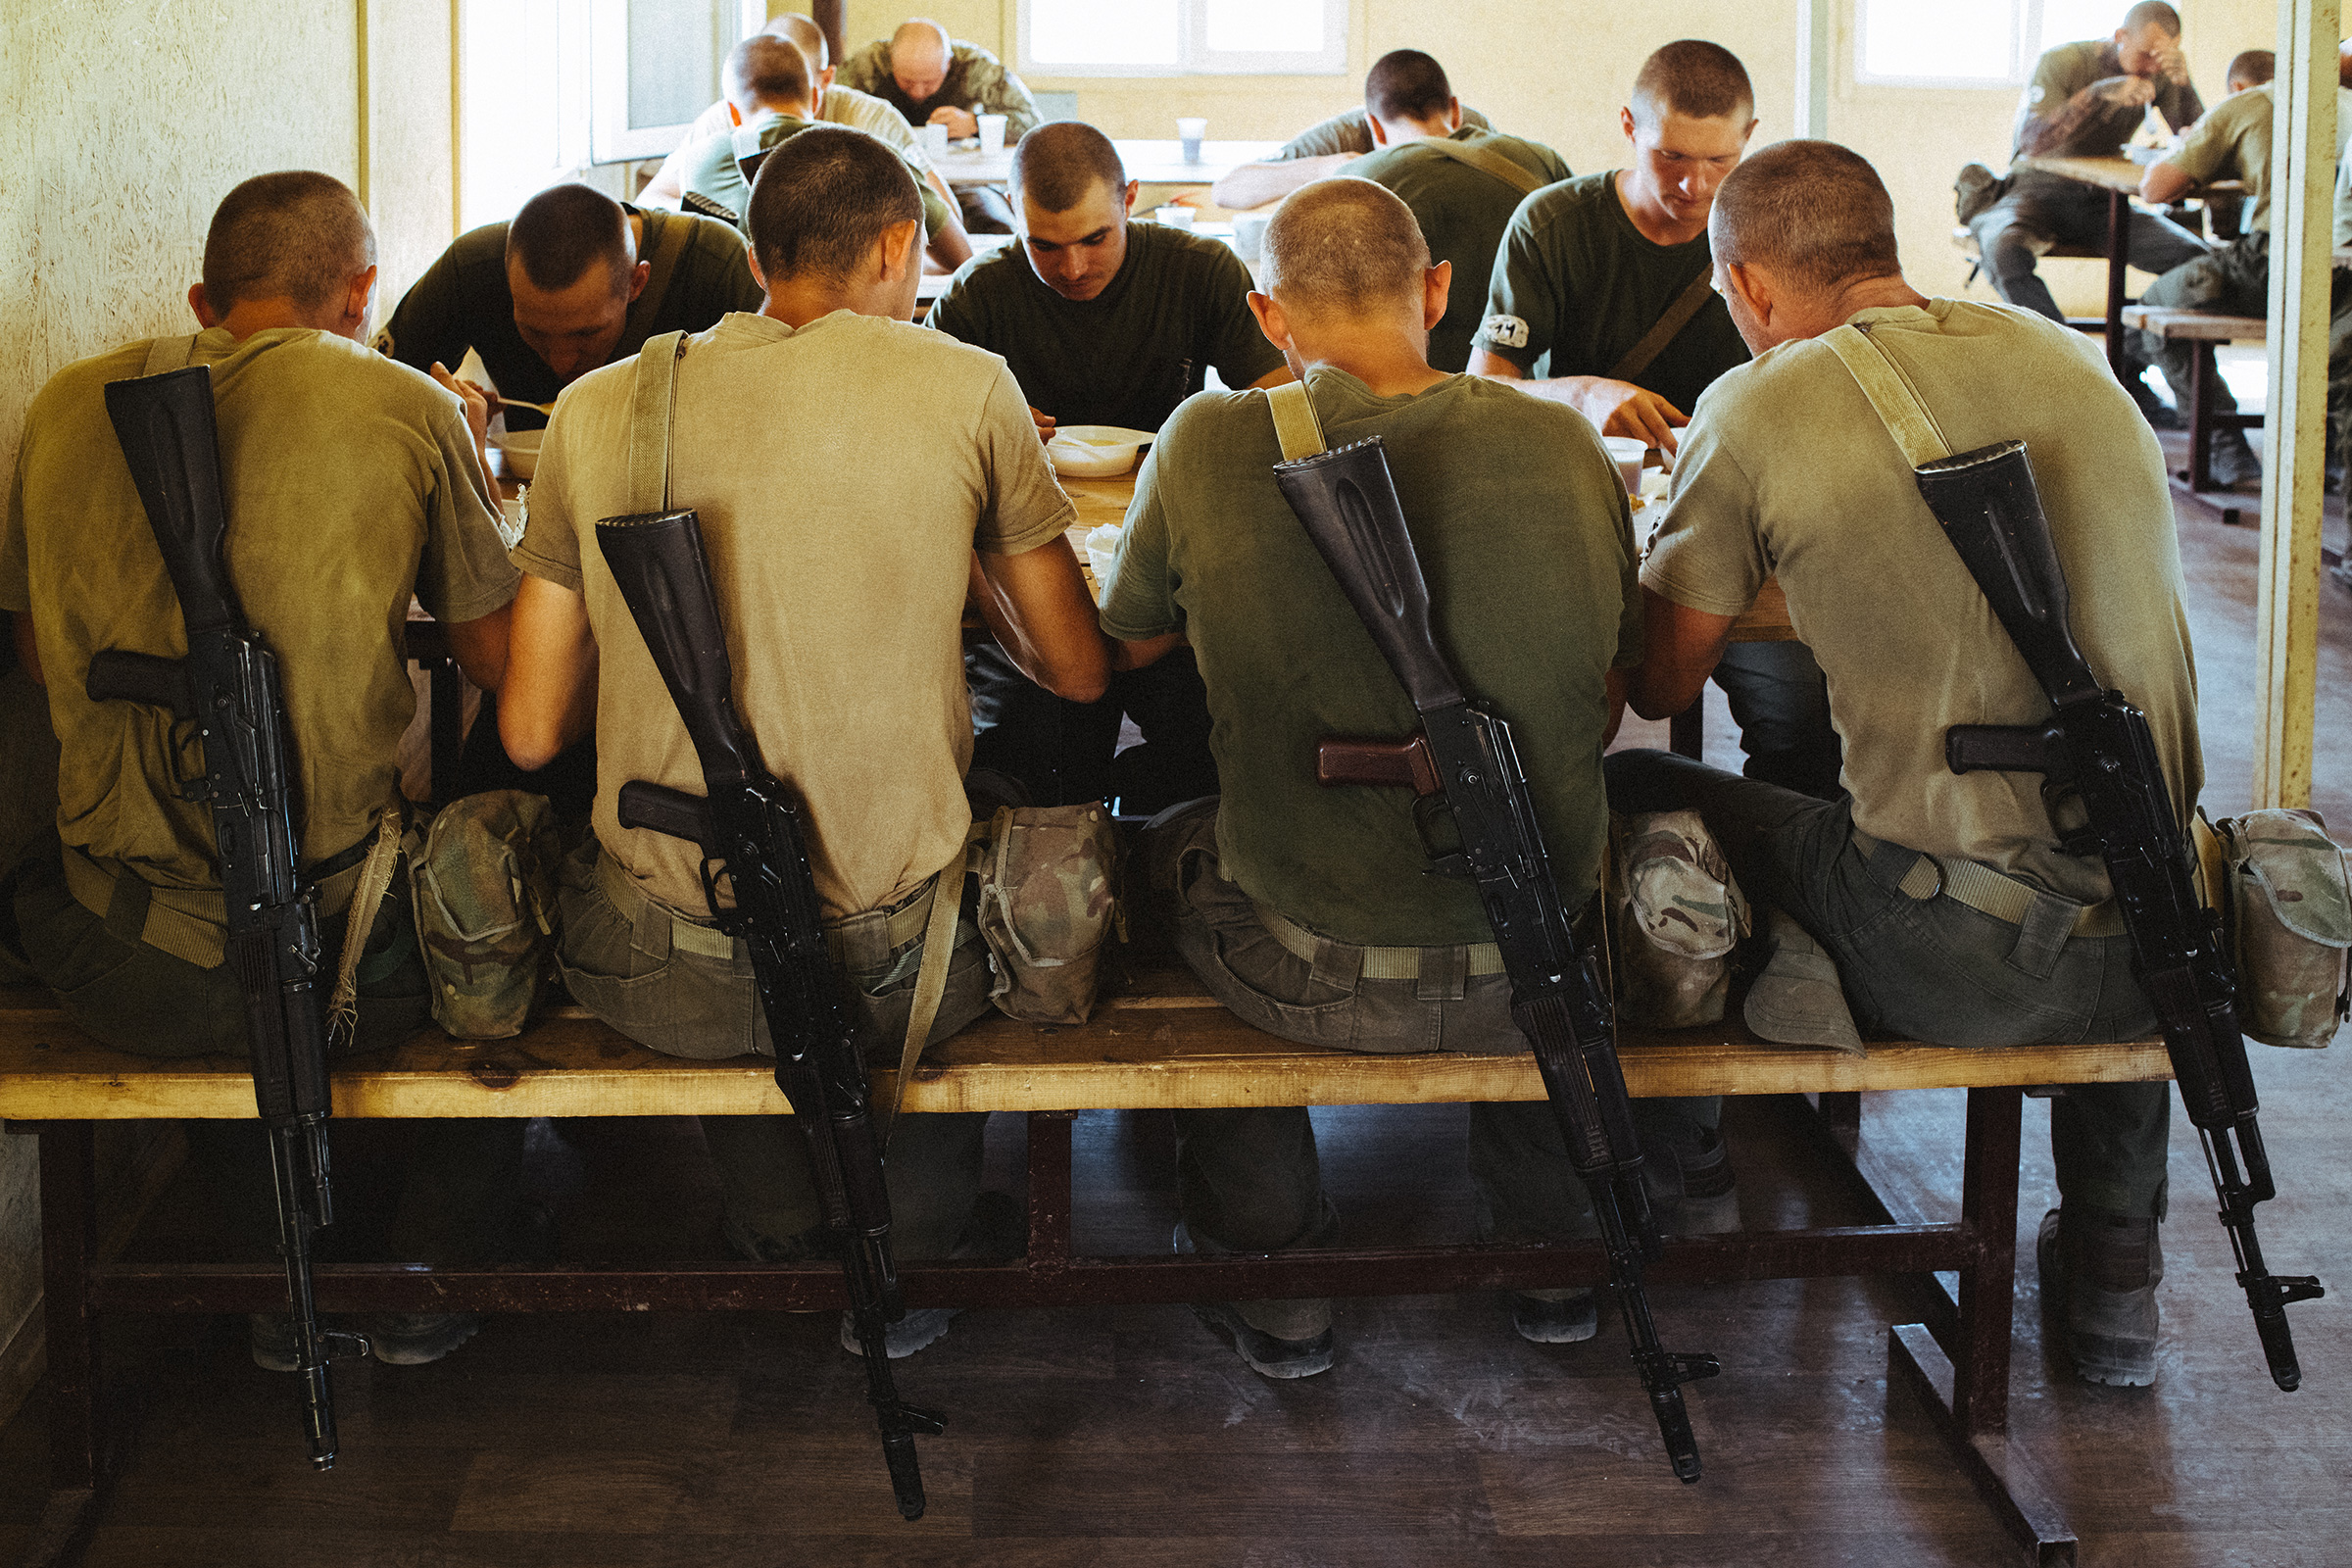 Weapons rest off the backs of recruits during a shared meal. At least since 2018, when the U.S. Congress explicitly barred any U.S. support for Azov, its fighters have been unable to train alongside troops from the U.S.-led NATO alliance.